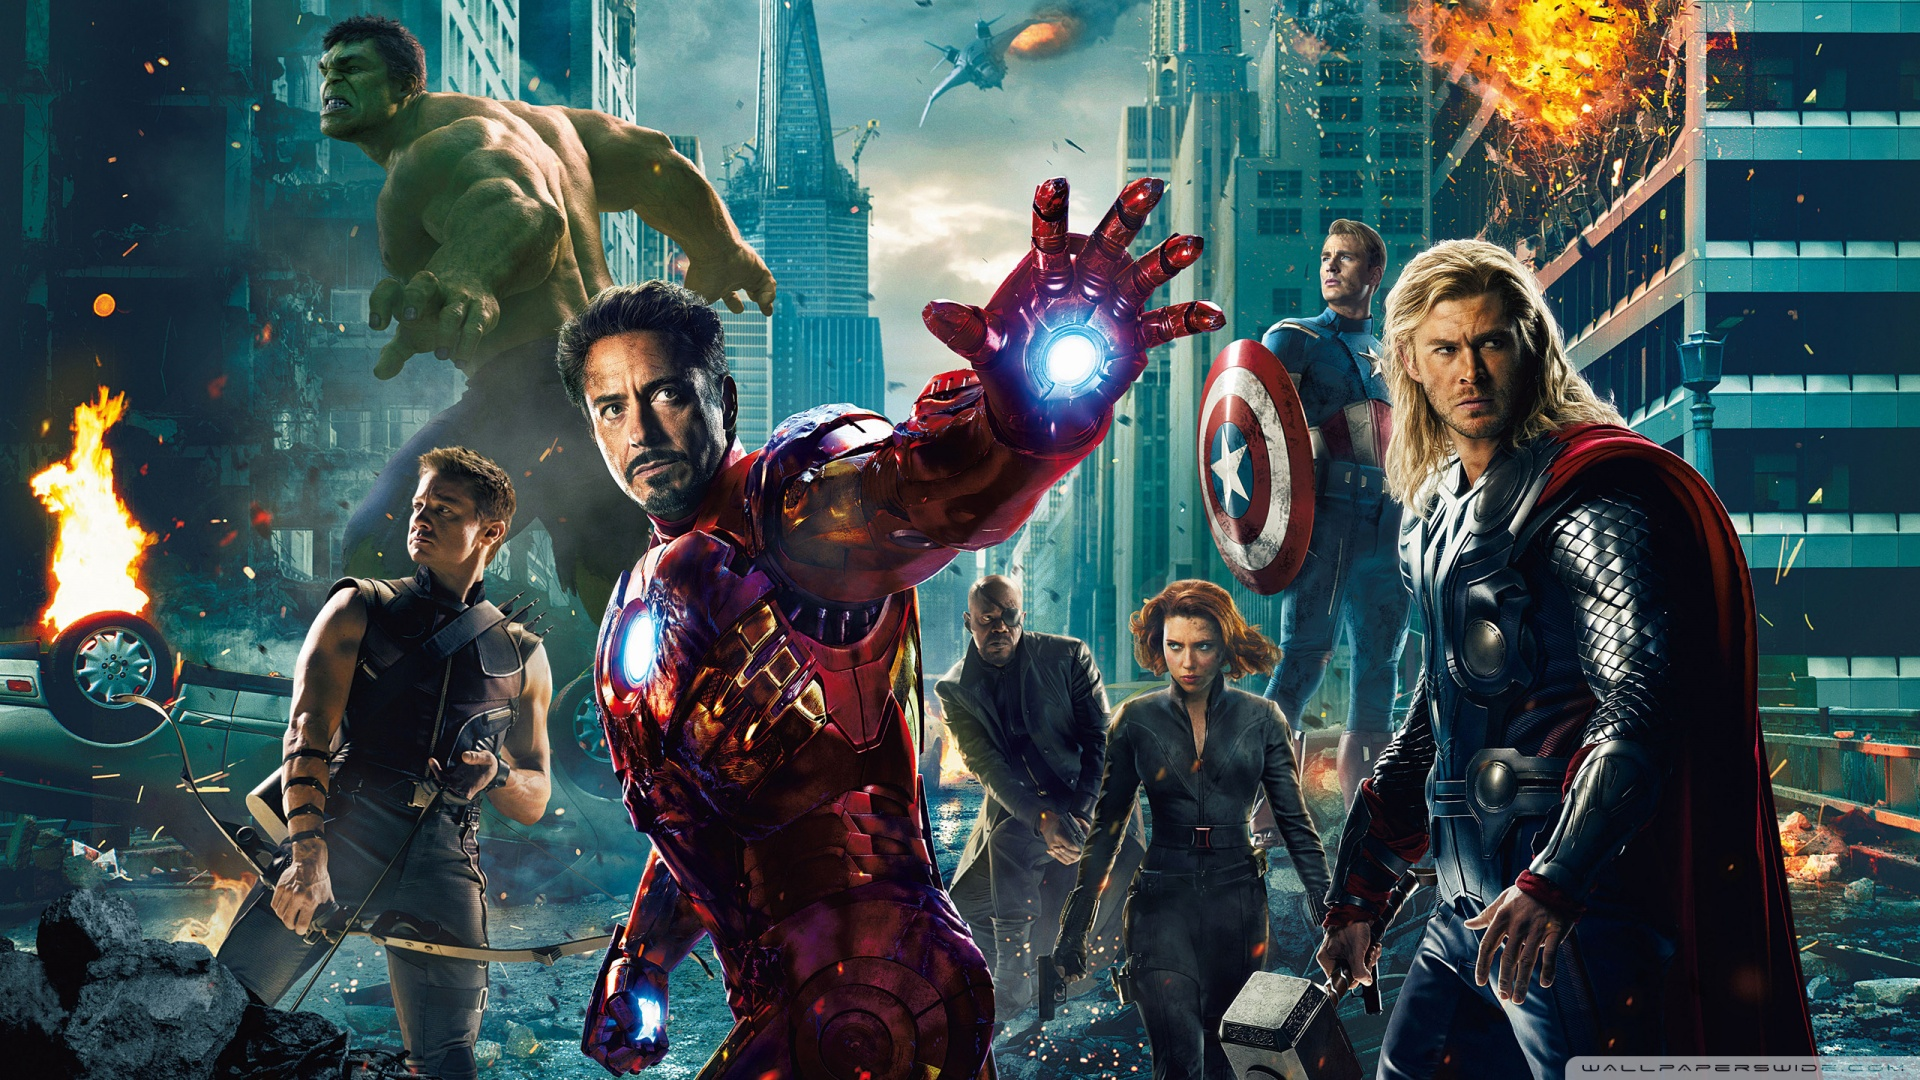 Beautiful Wallpaper Movie Action - the-avengers-marvel-live-action-movies-37161320-1920-1080  Pic_893629.jpg